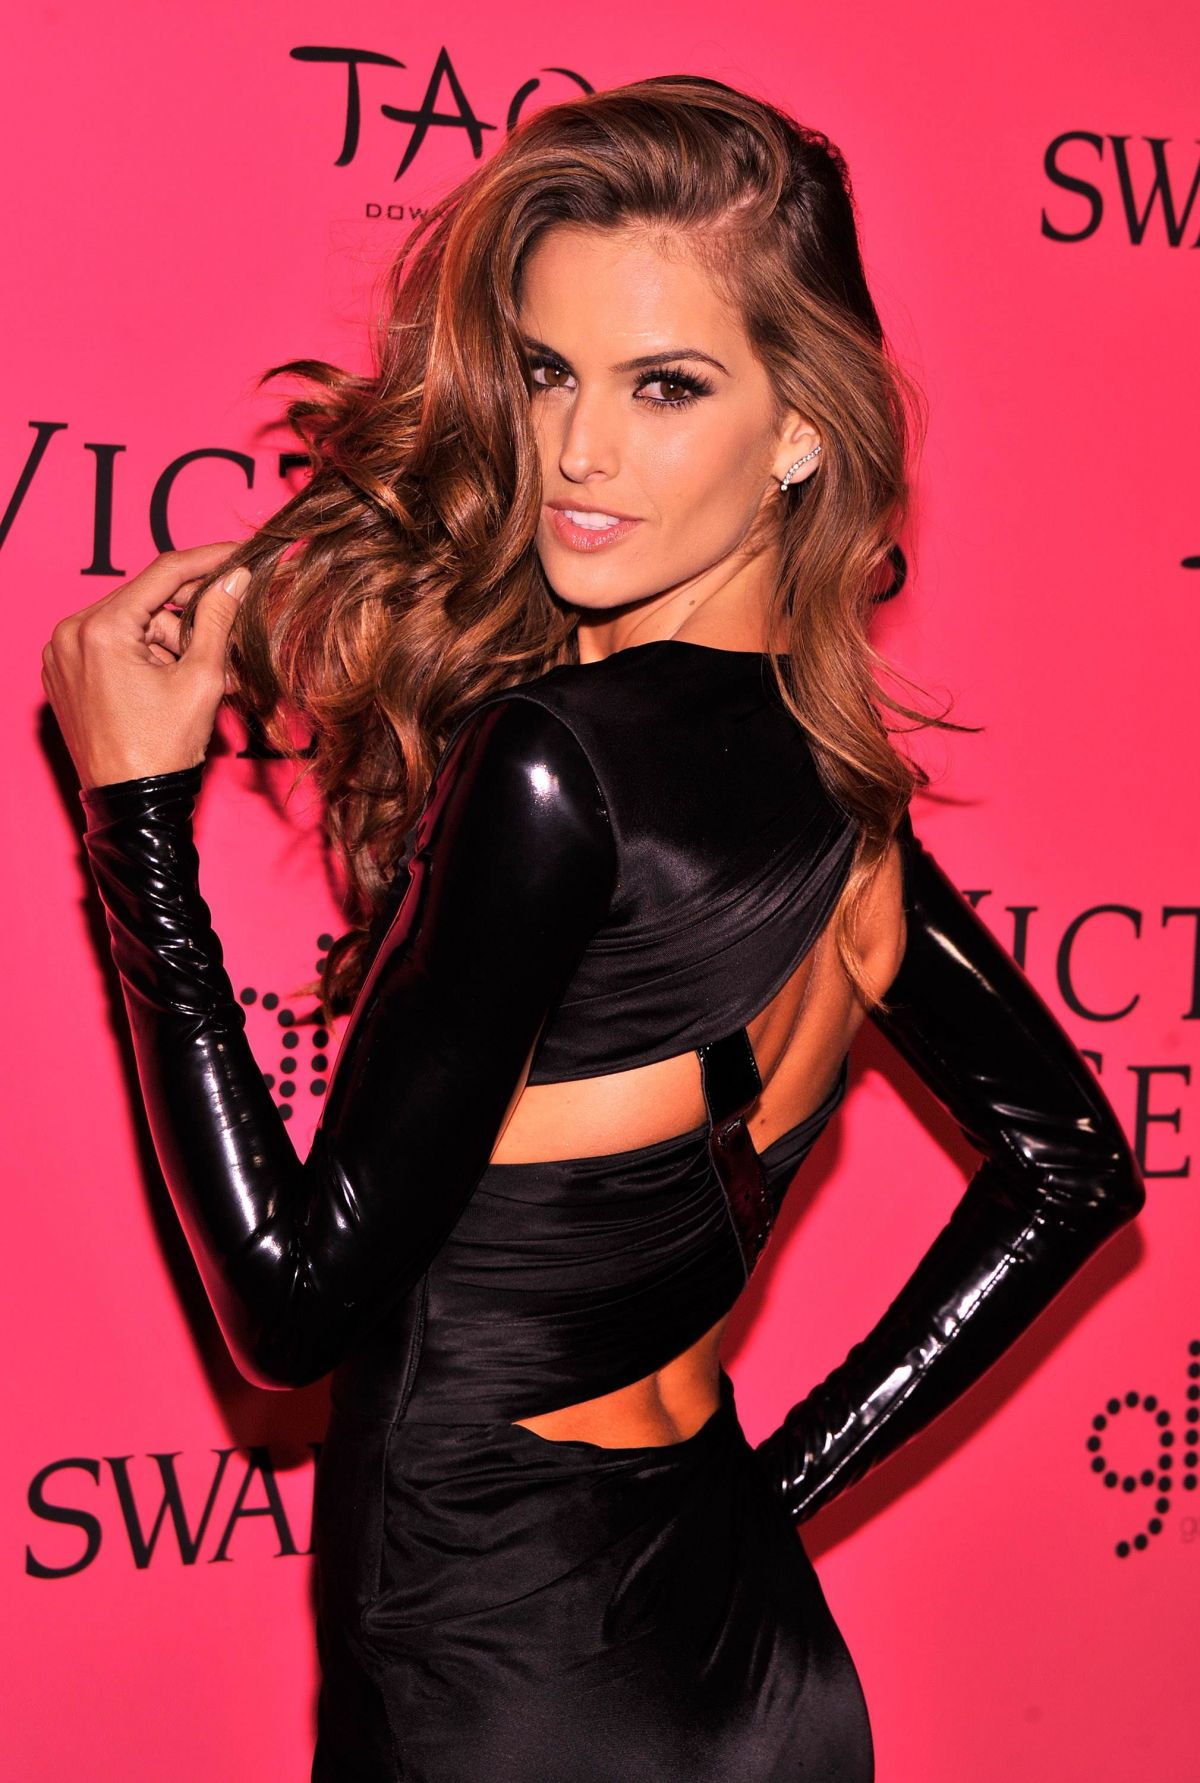 Snapchat Izabel Goulart nude (46 photos), Instagram